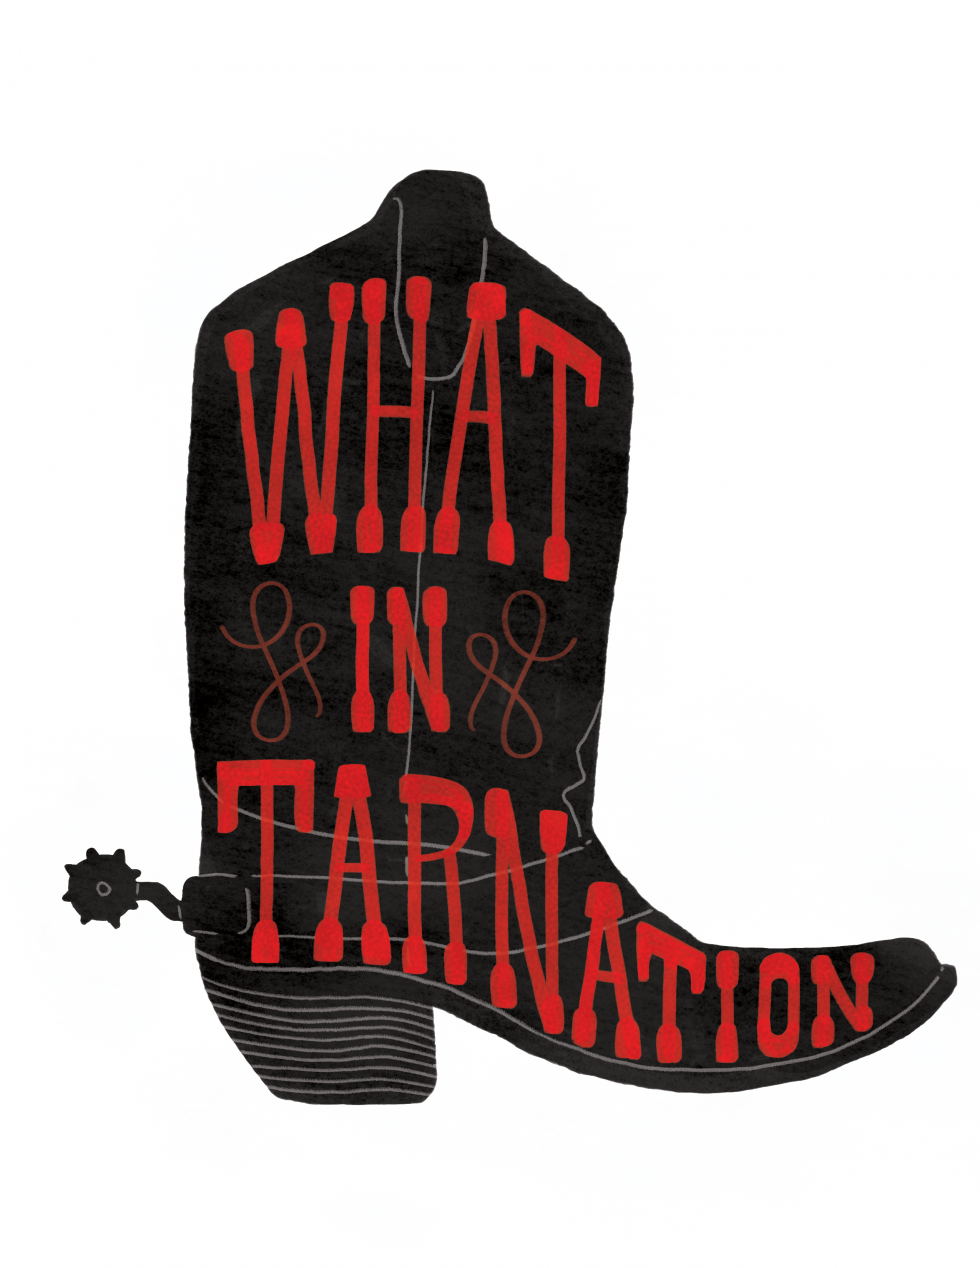 "A side view of a black cowboy boot with the words ""what in tarnation"" written on the ide. The text is drawn in a wild west style."